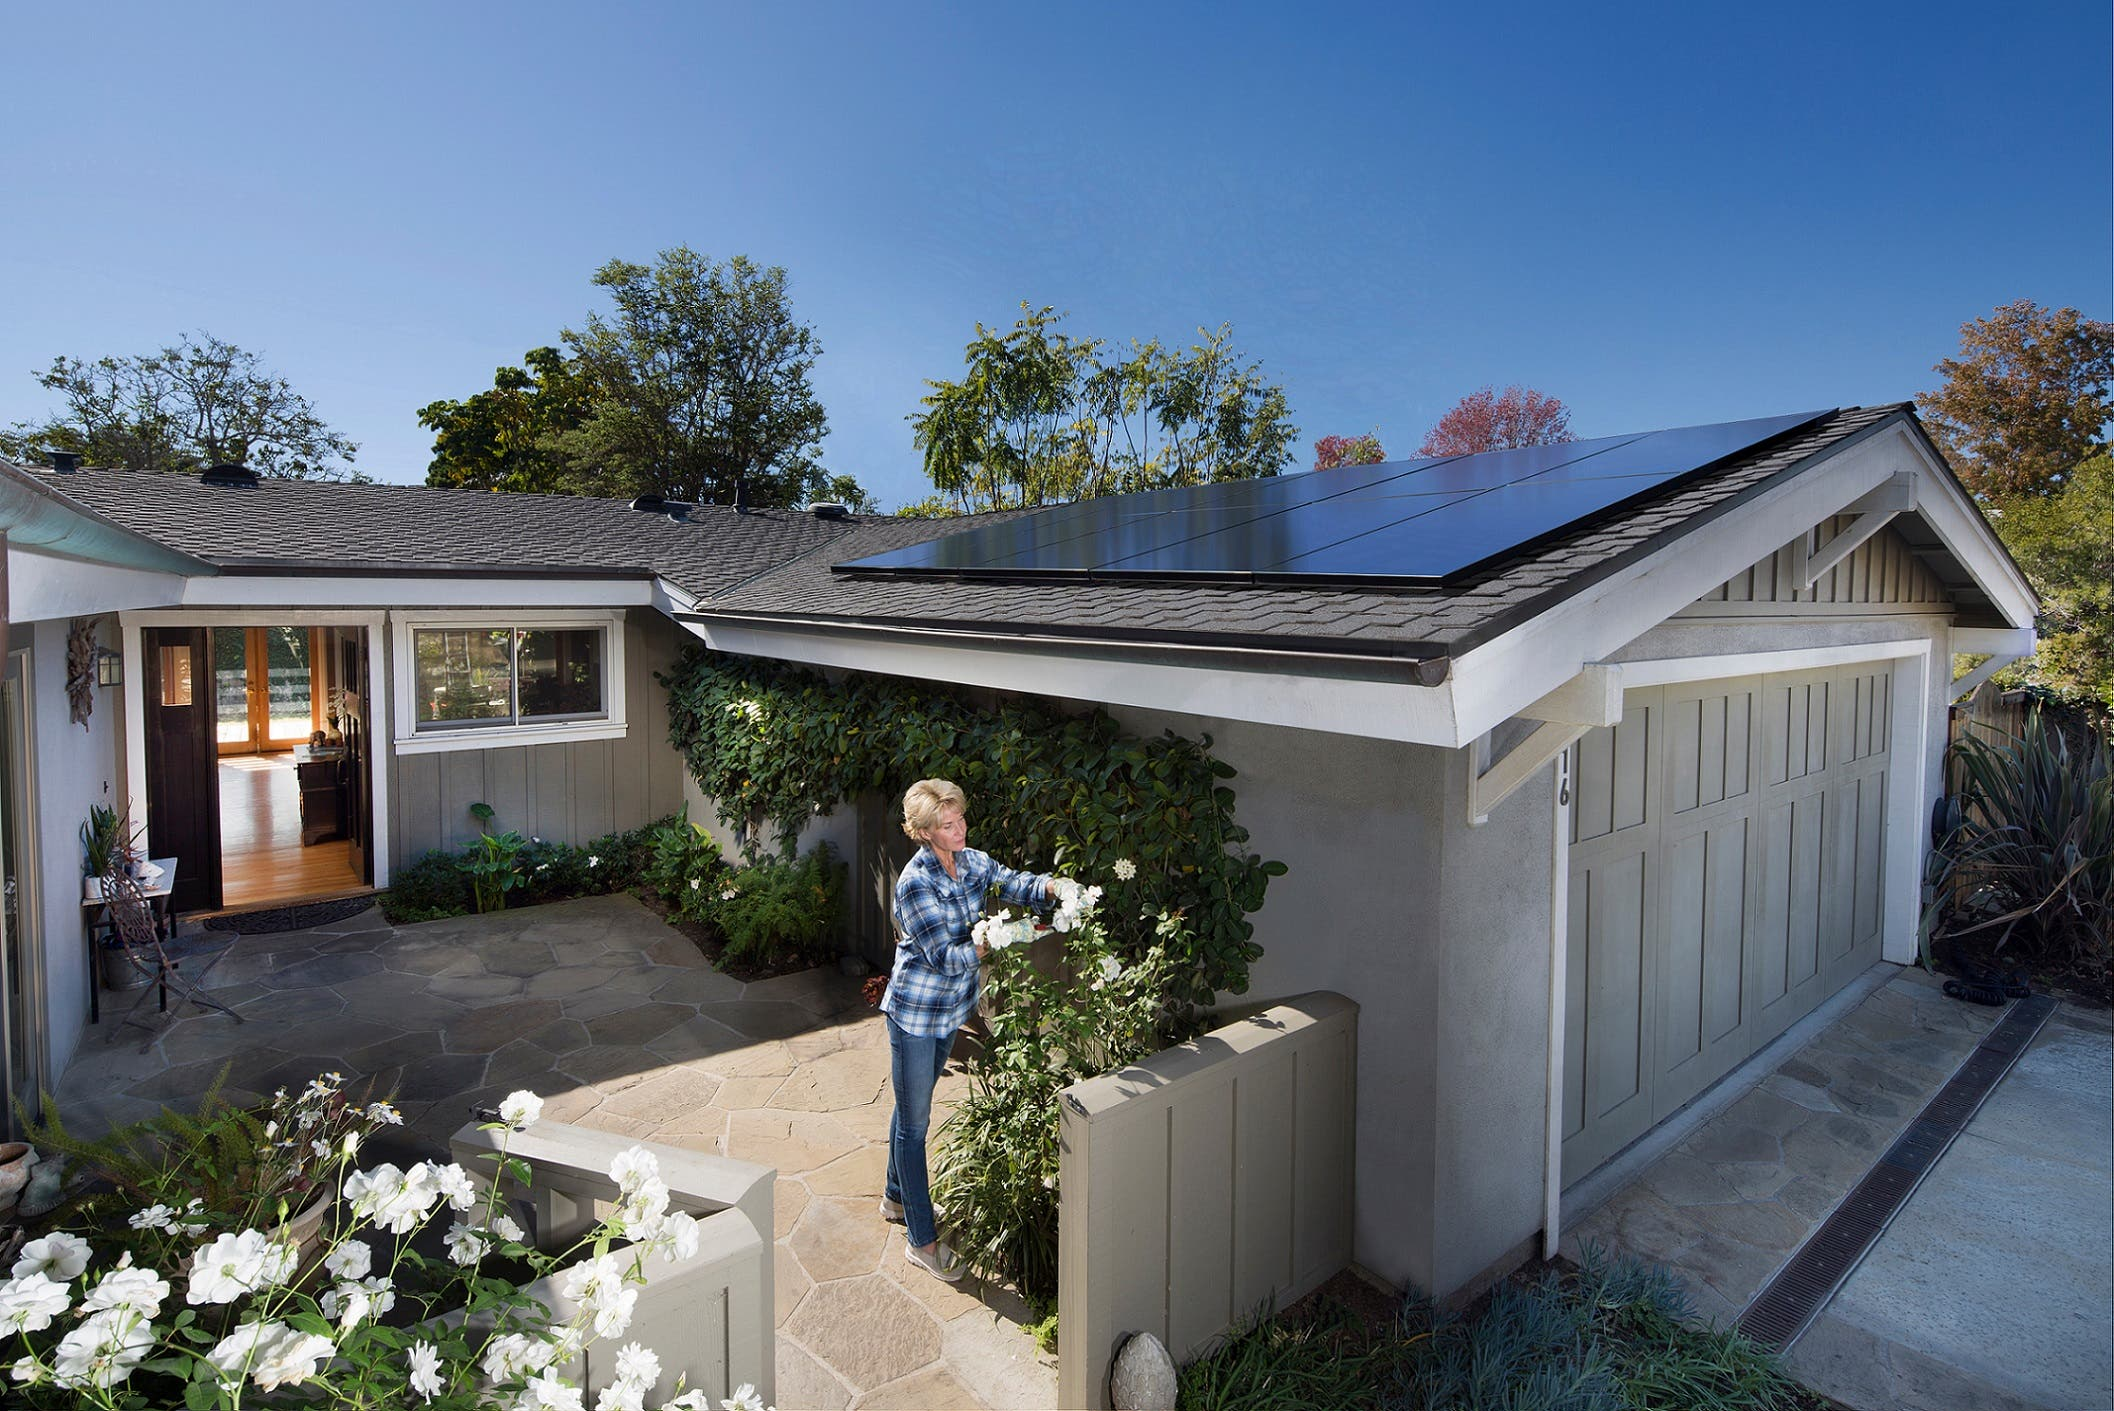 rooftop solar power USA